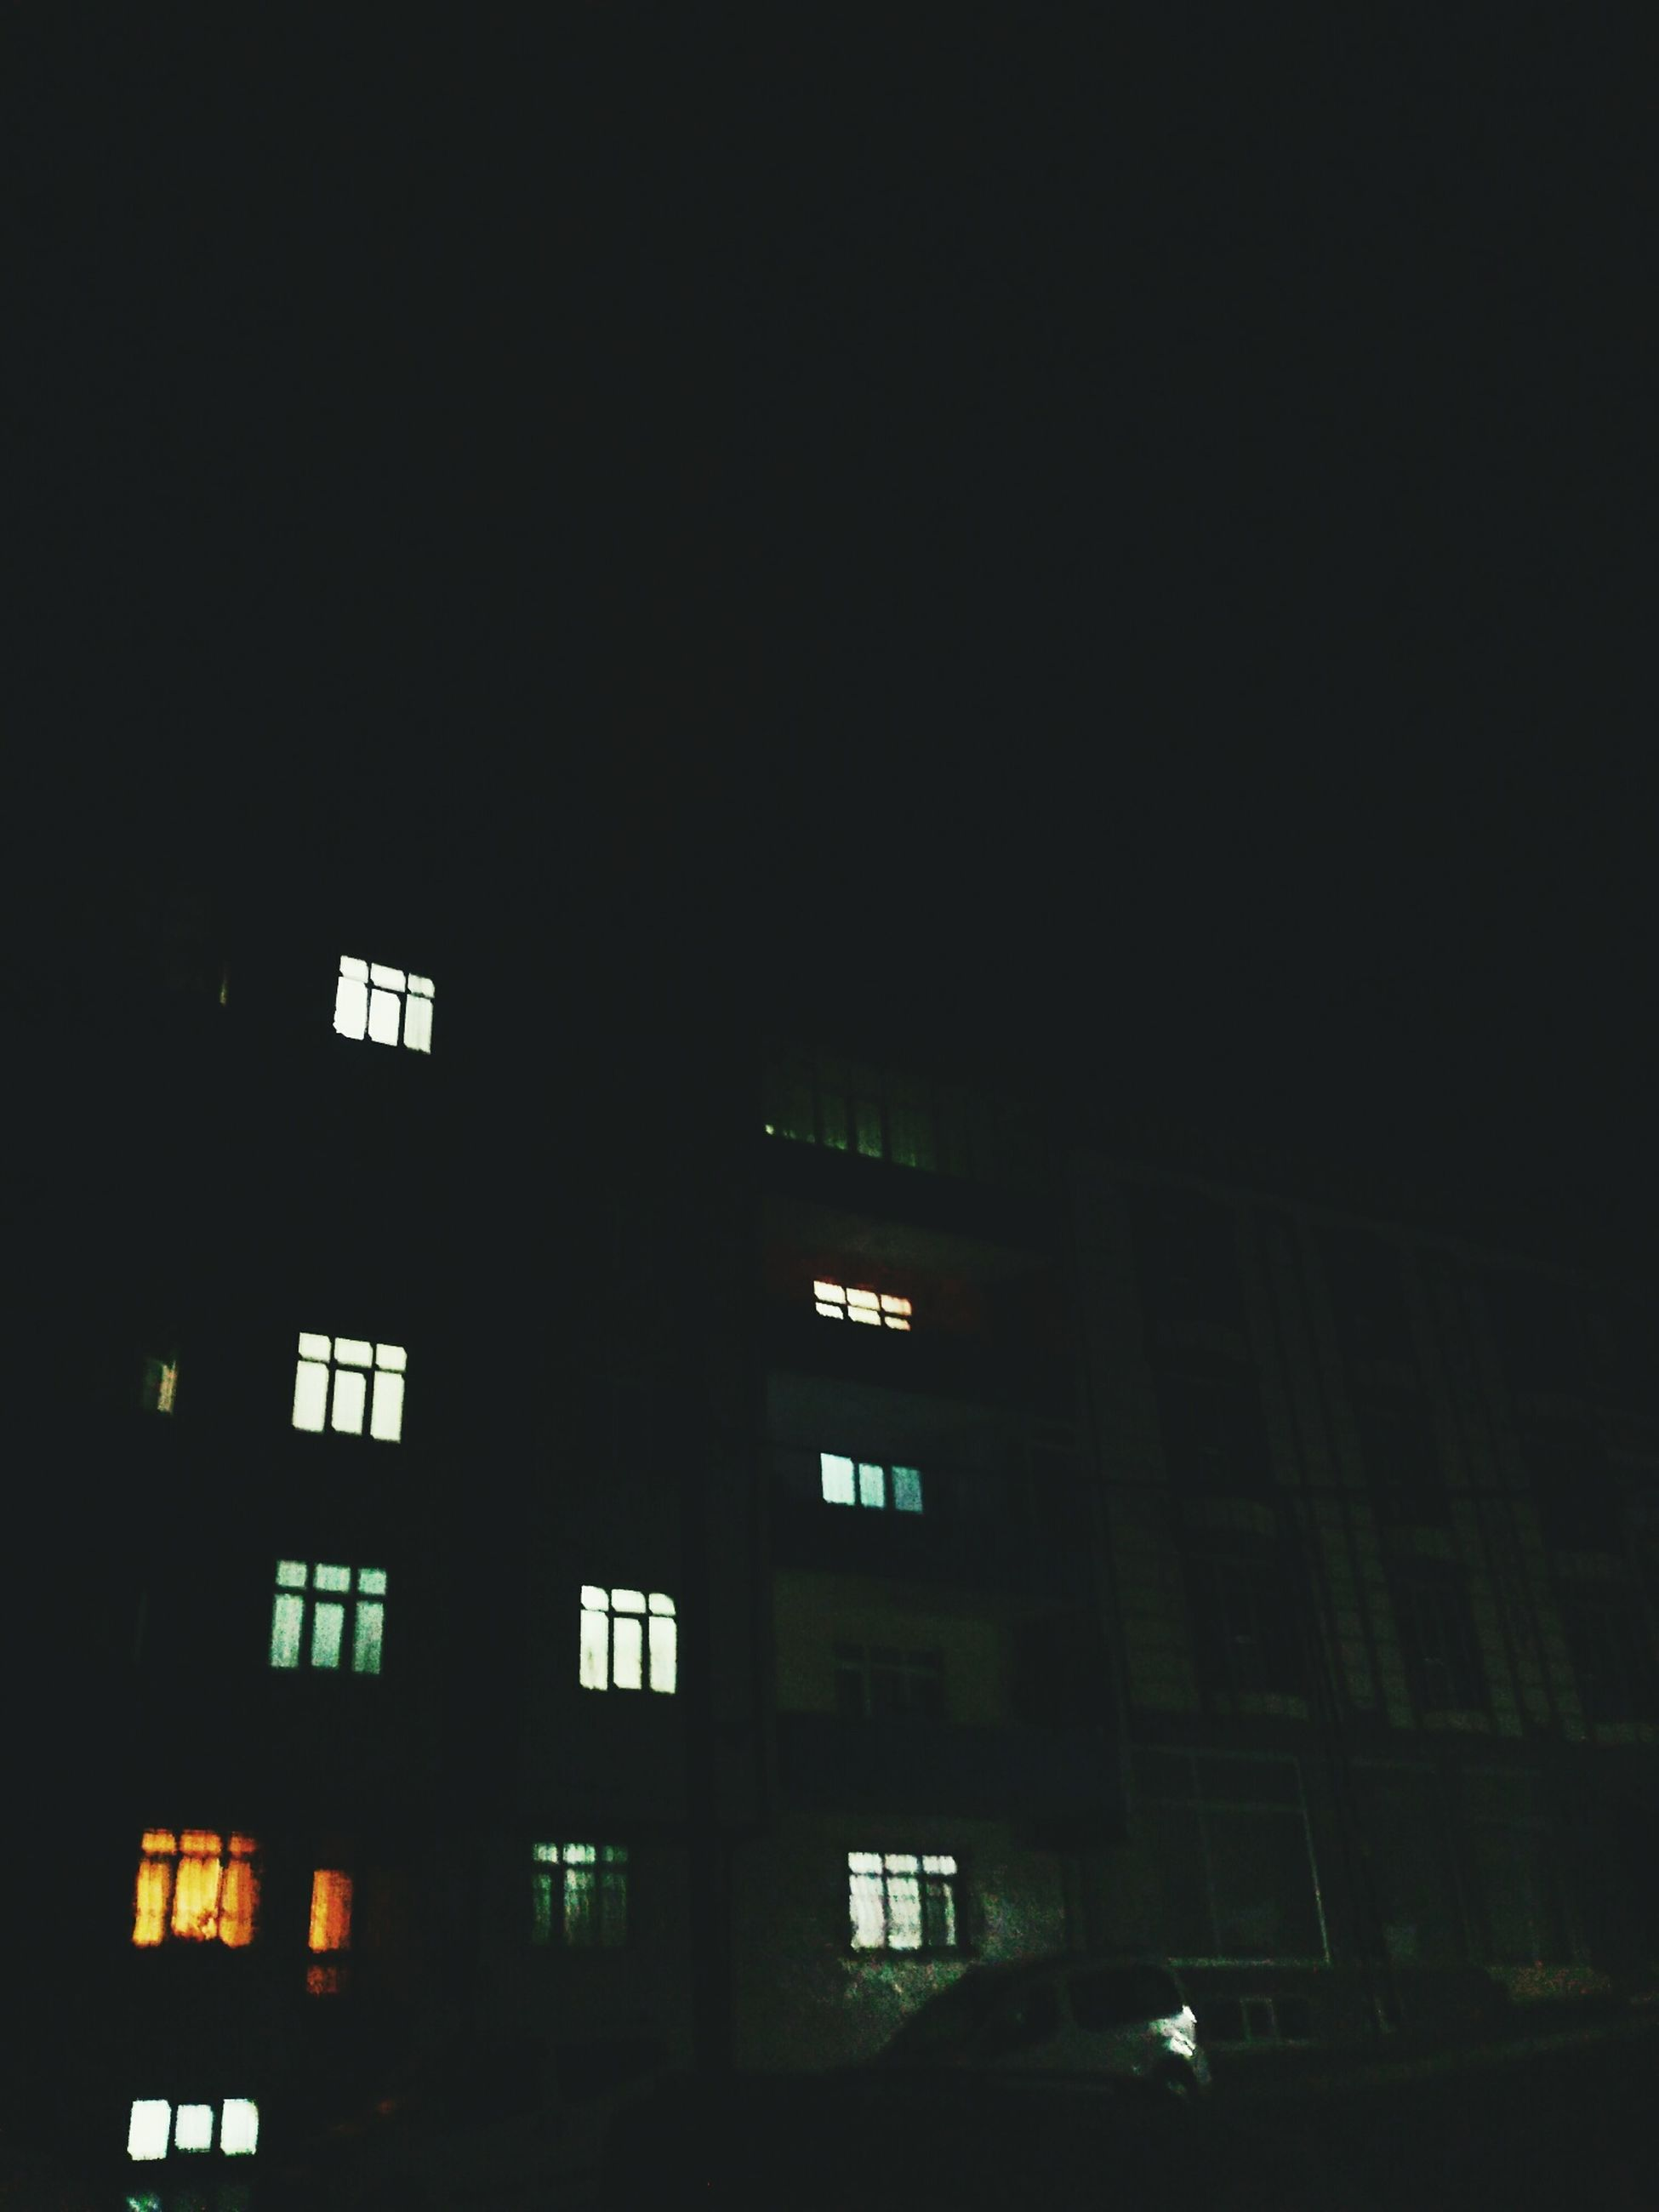 architecture, building exterior, built structure, window, dark, night, low angle view, city, building, illuminated, building story, outdoors, no people, city life